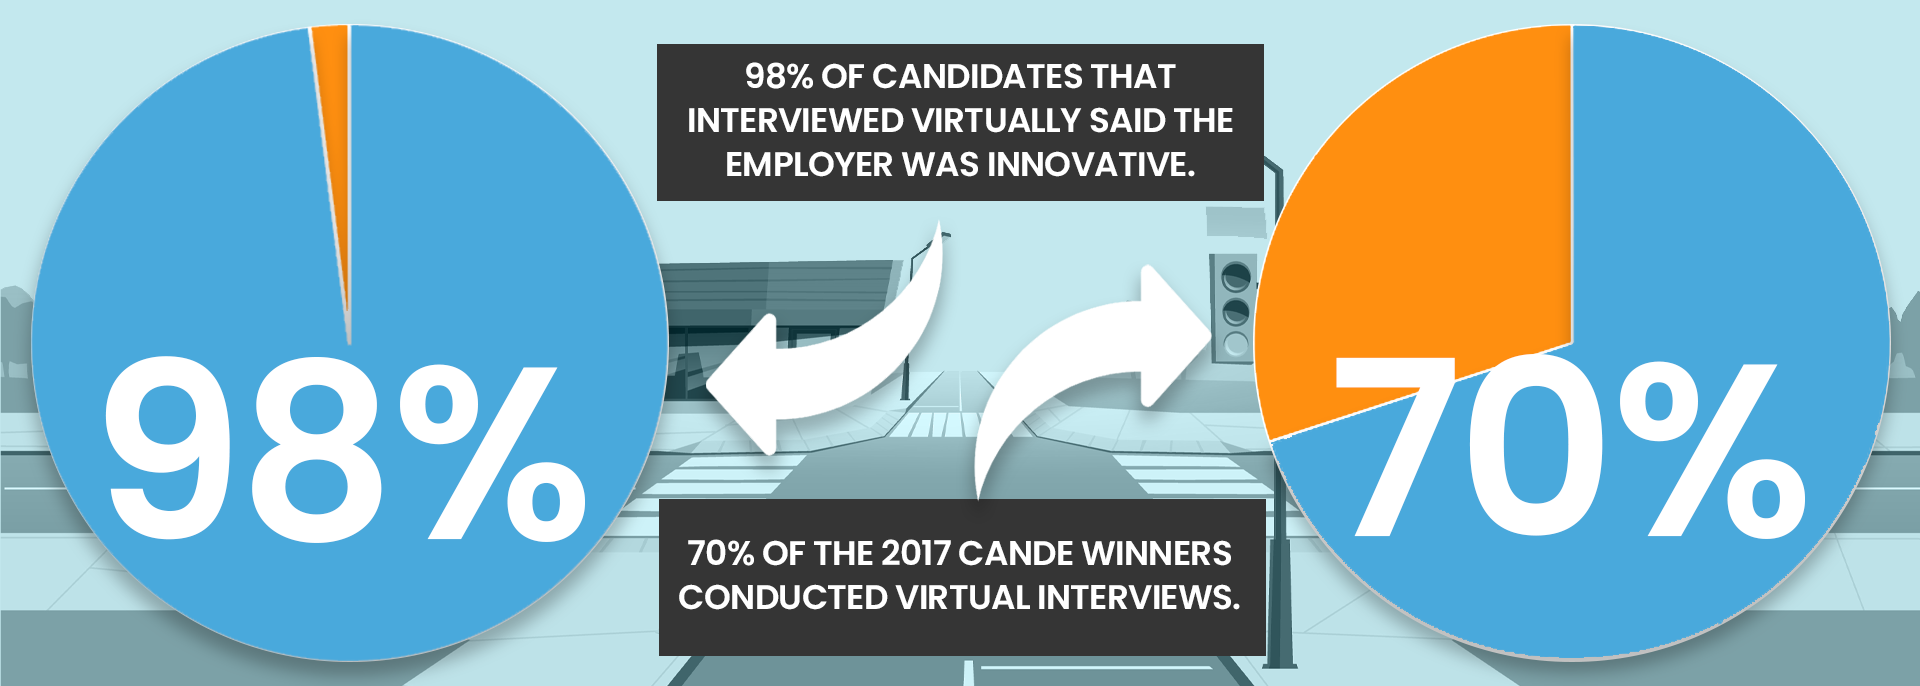 98 % of candidates interviewed virtually